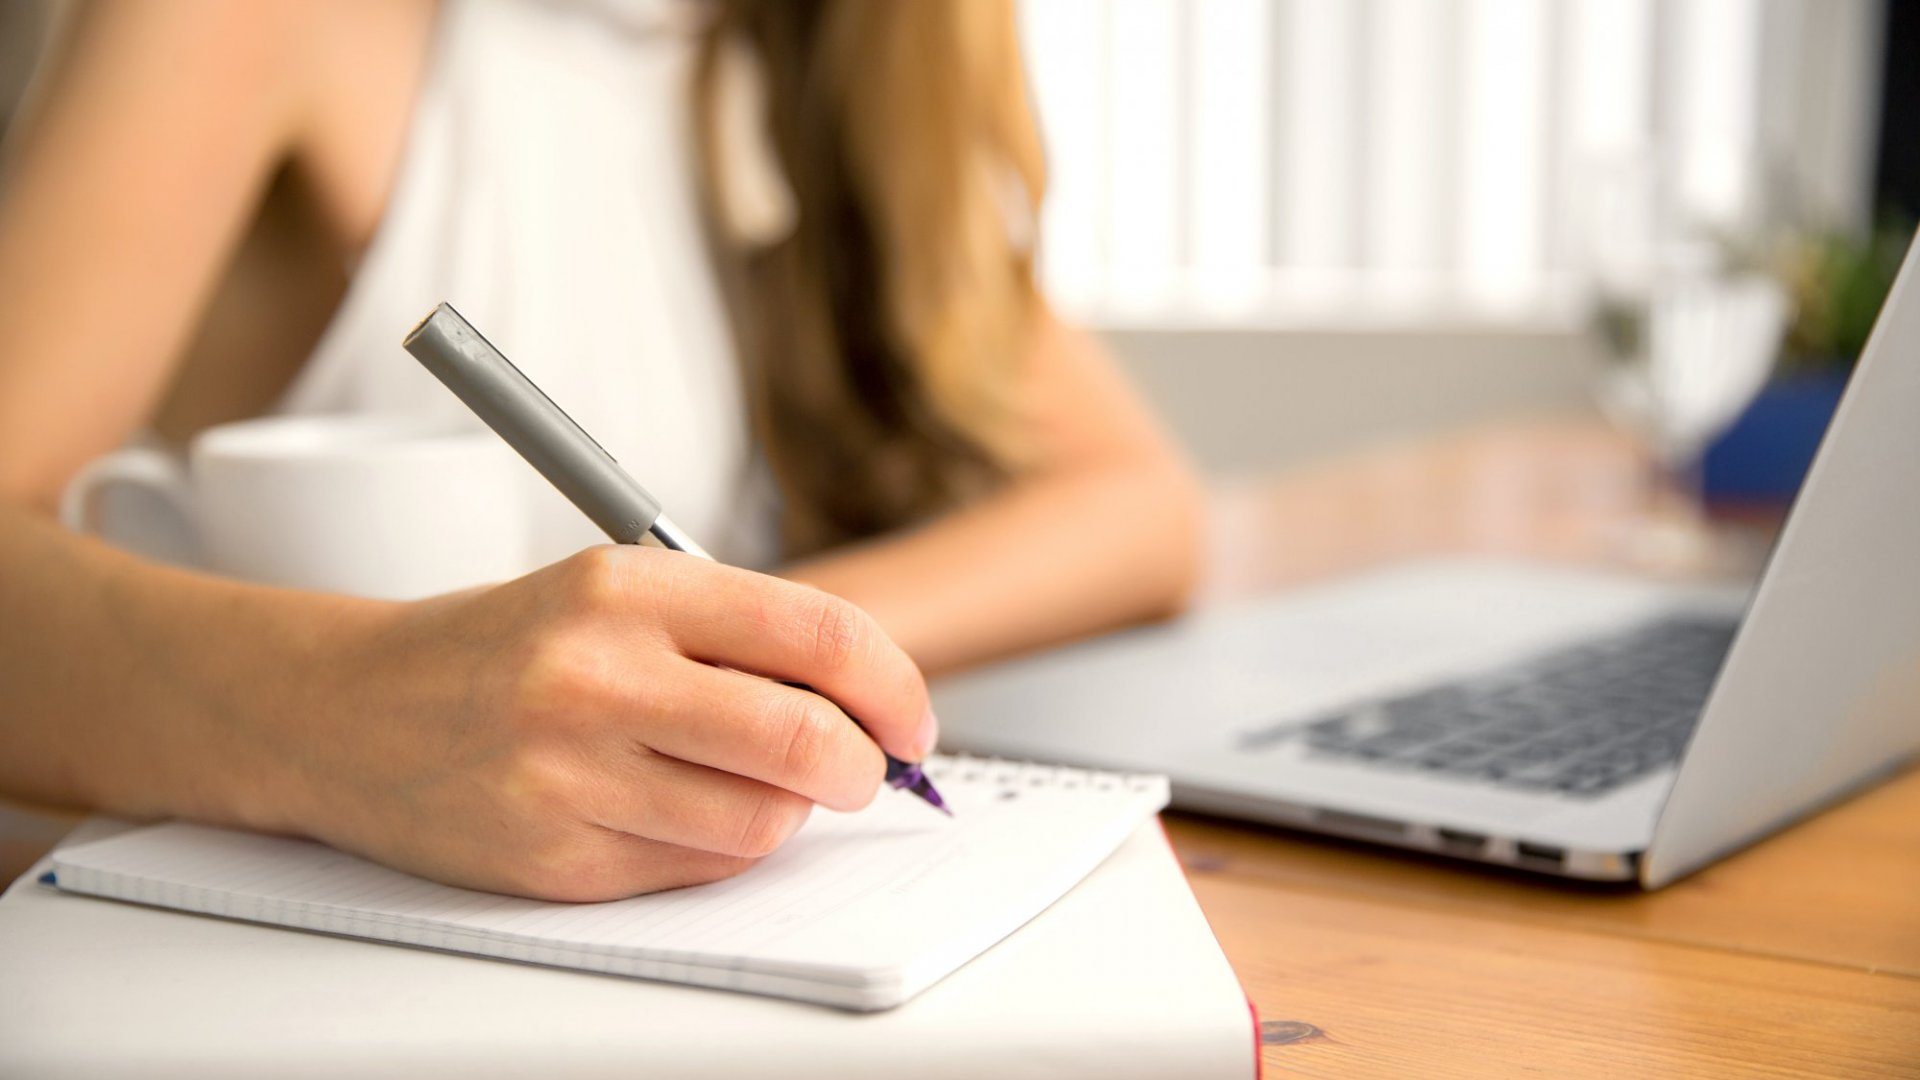 Want to Improve Your Writing? Try This Simple (and Free) Tech Hack